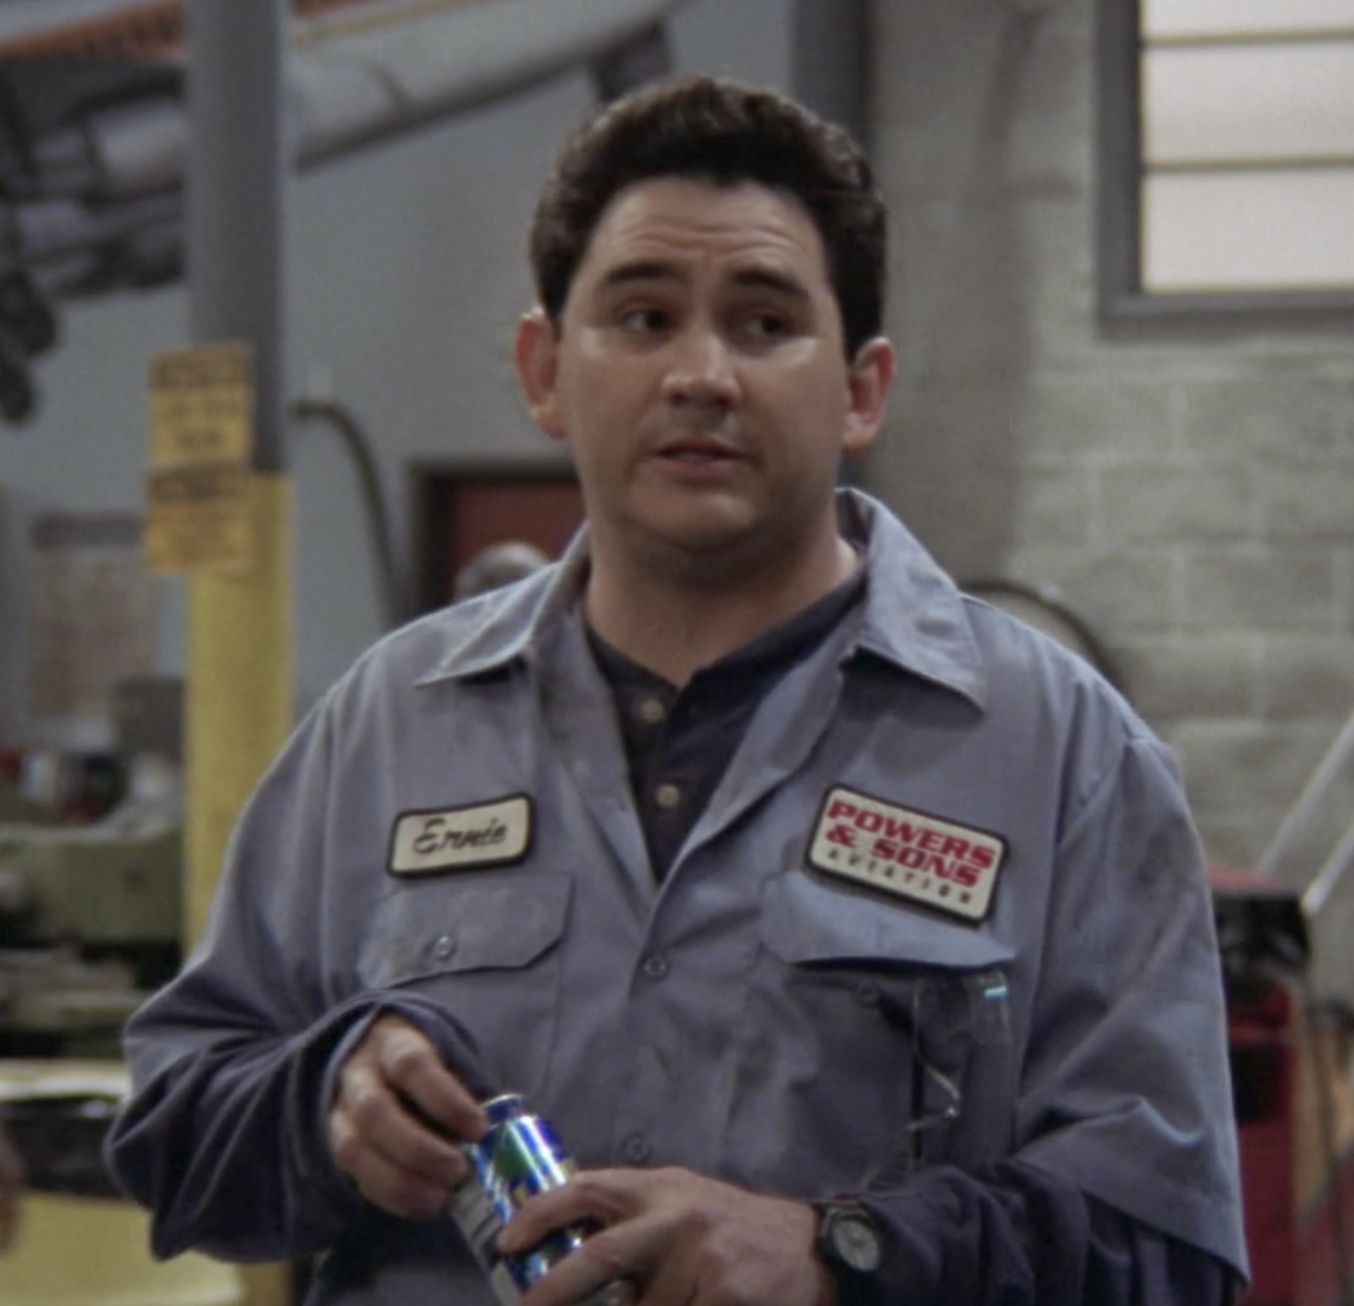 Ernie in The George Lopez Show